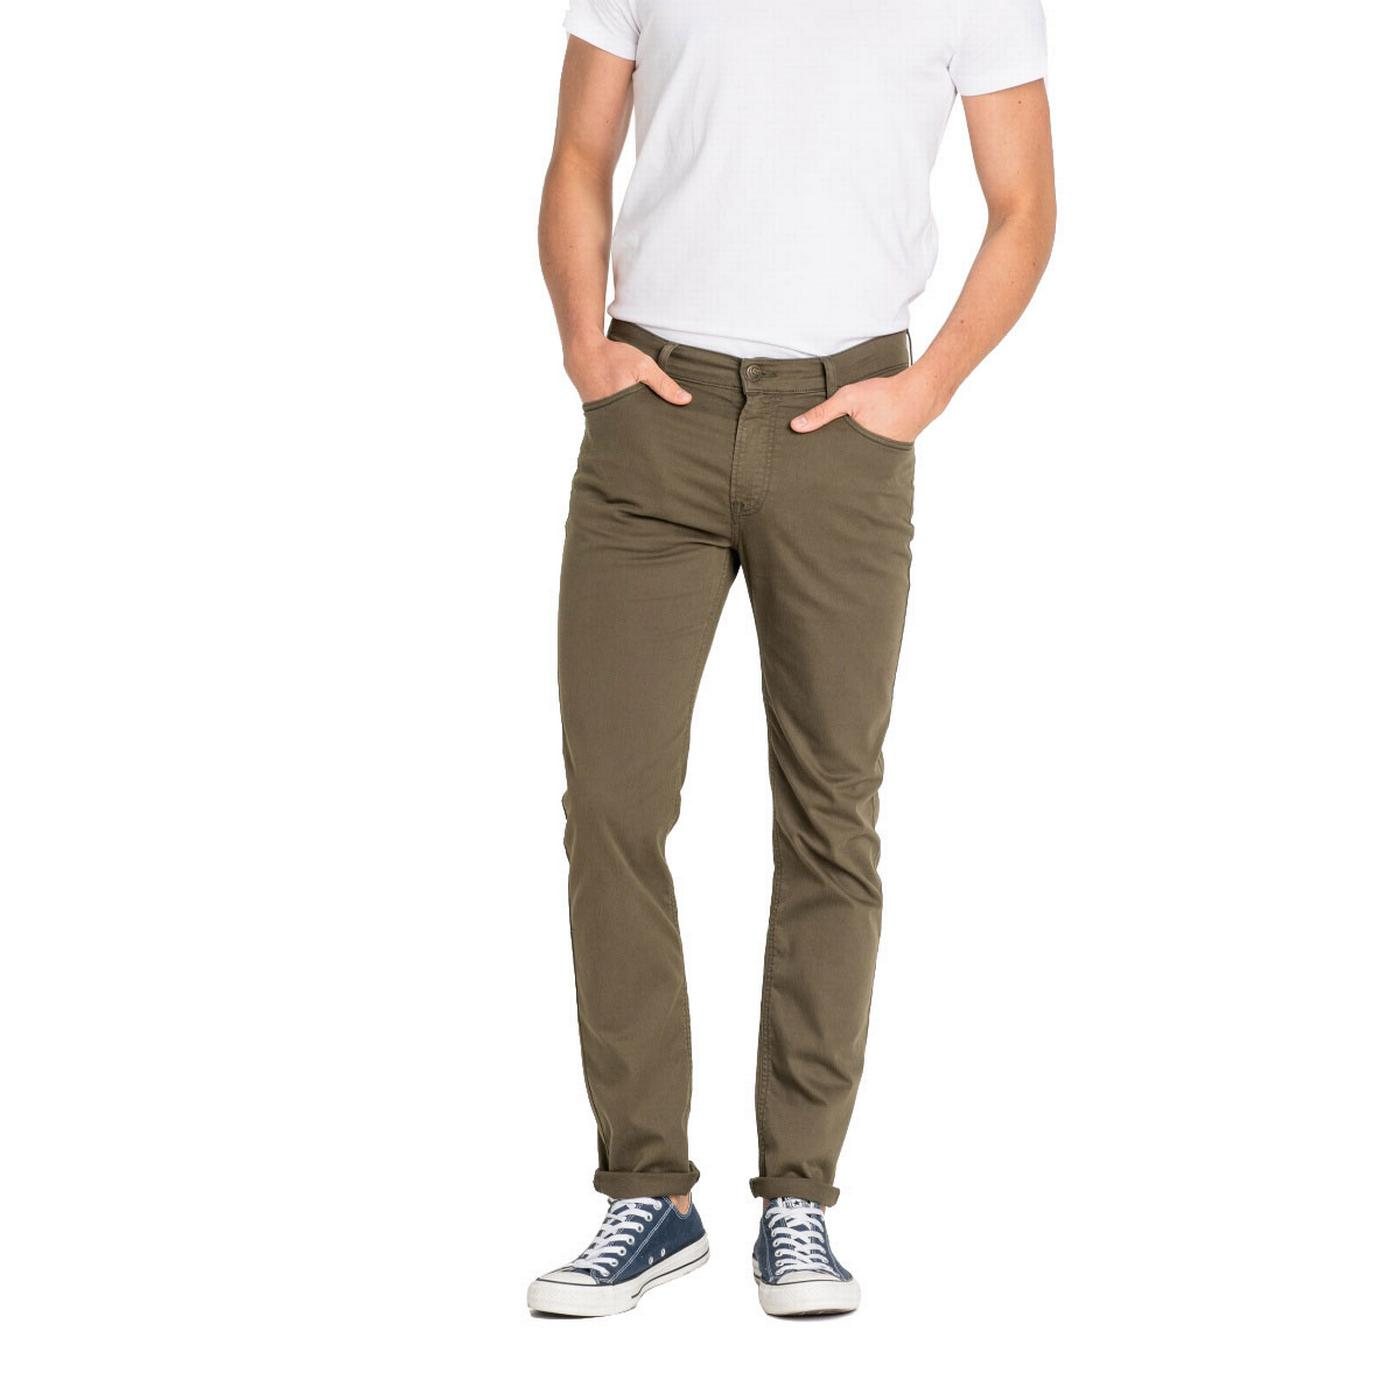 Rider LEE Men's Retro Slim Leg Chinos - IVY GREEN